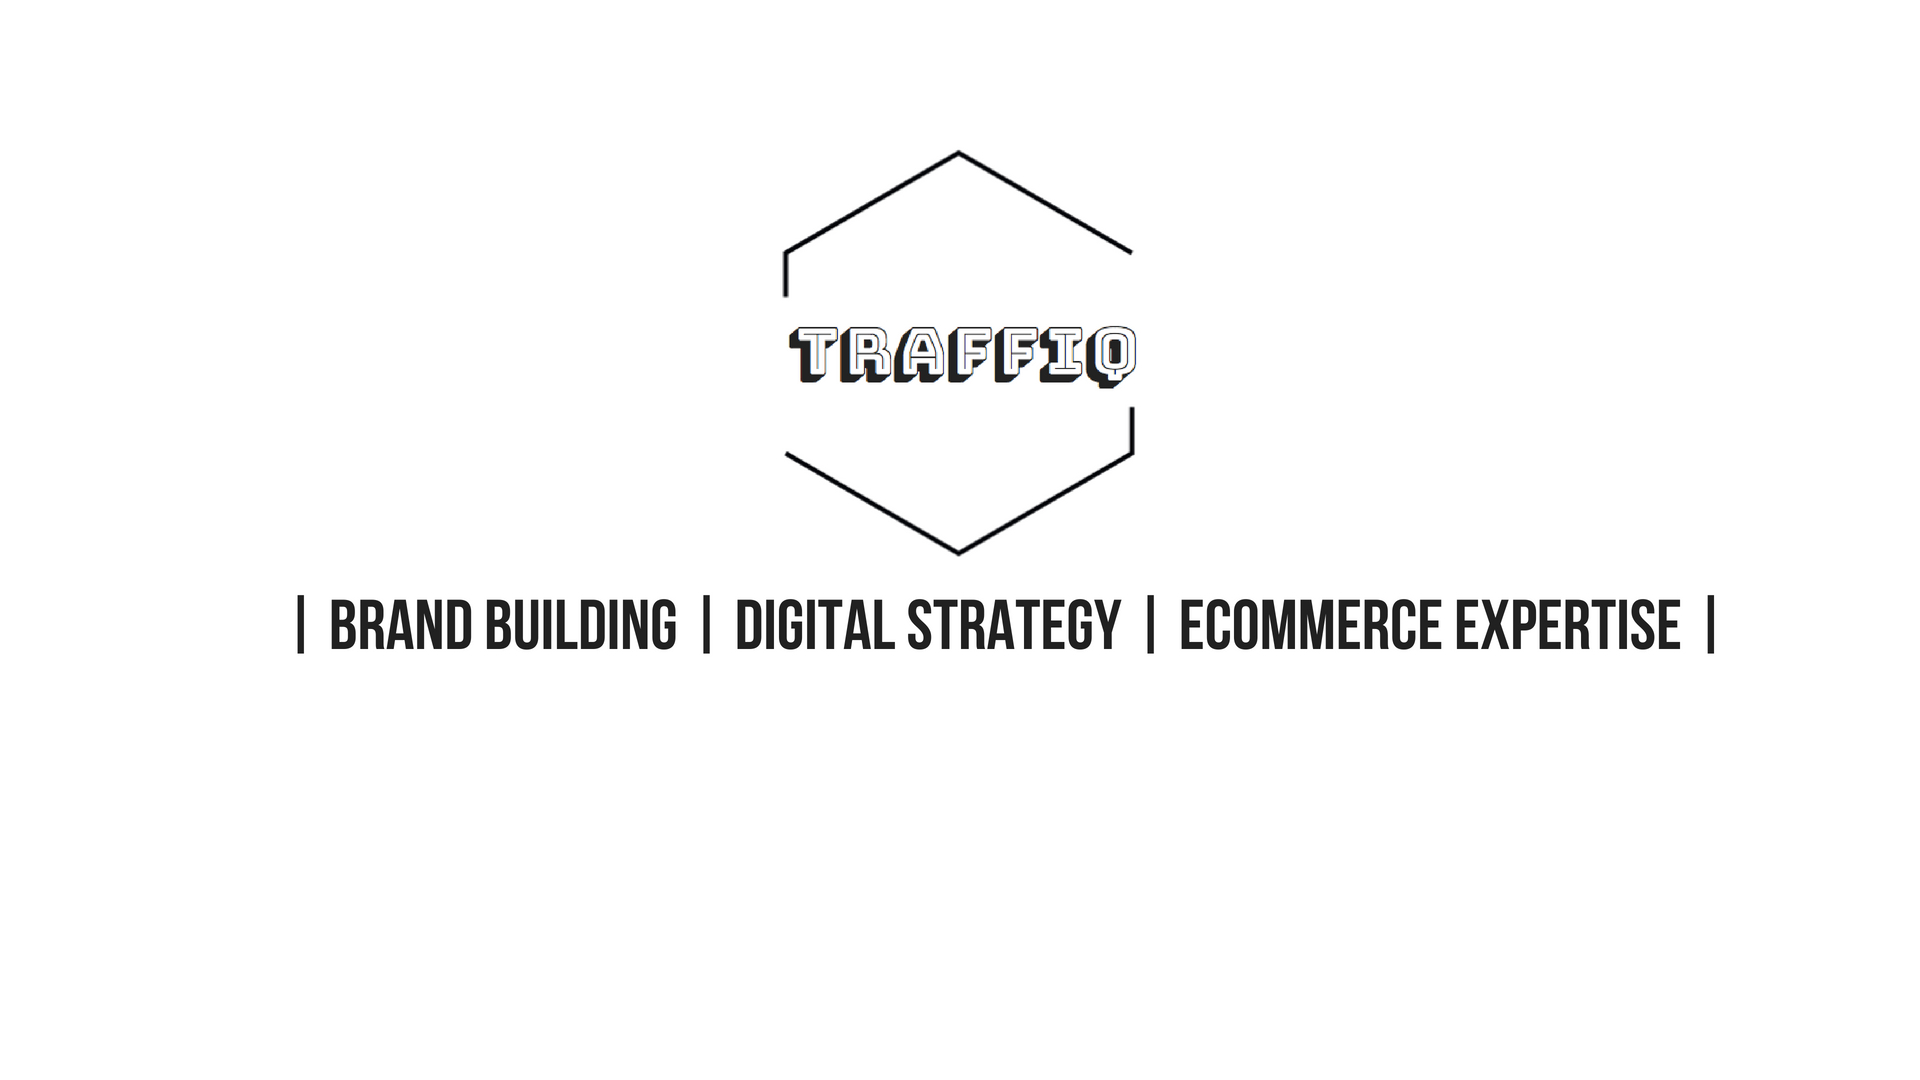 | Brand Building | Digital Strategy | eCommerce Expertise |